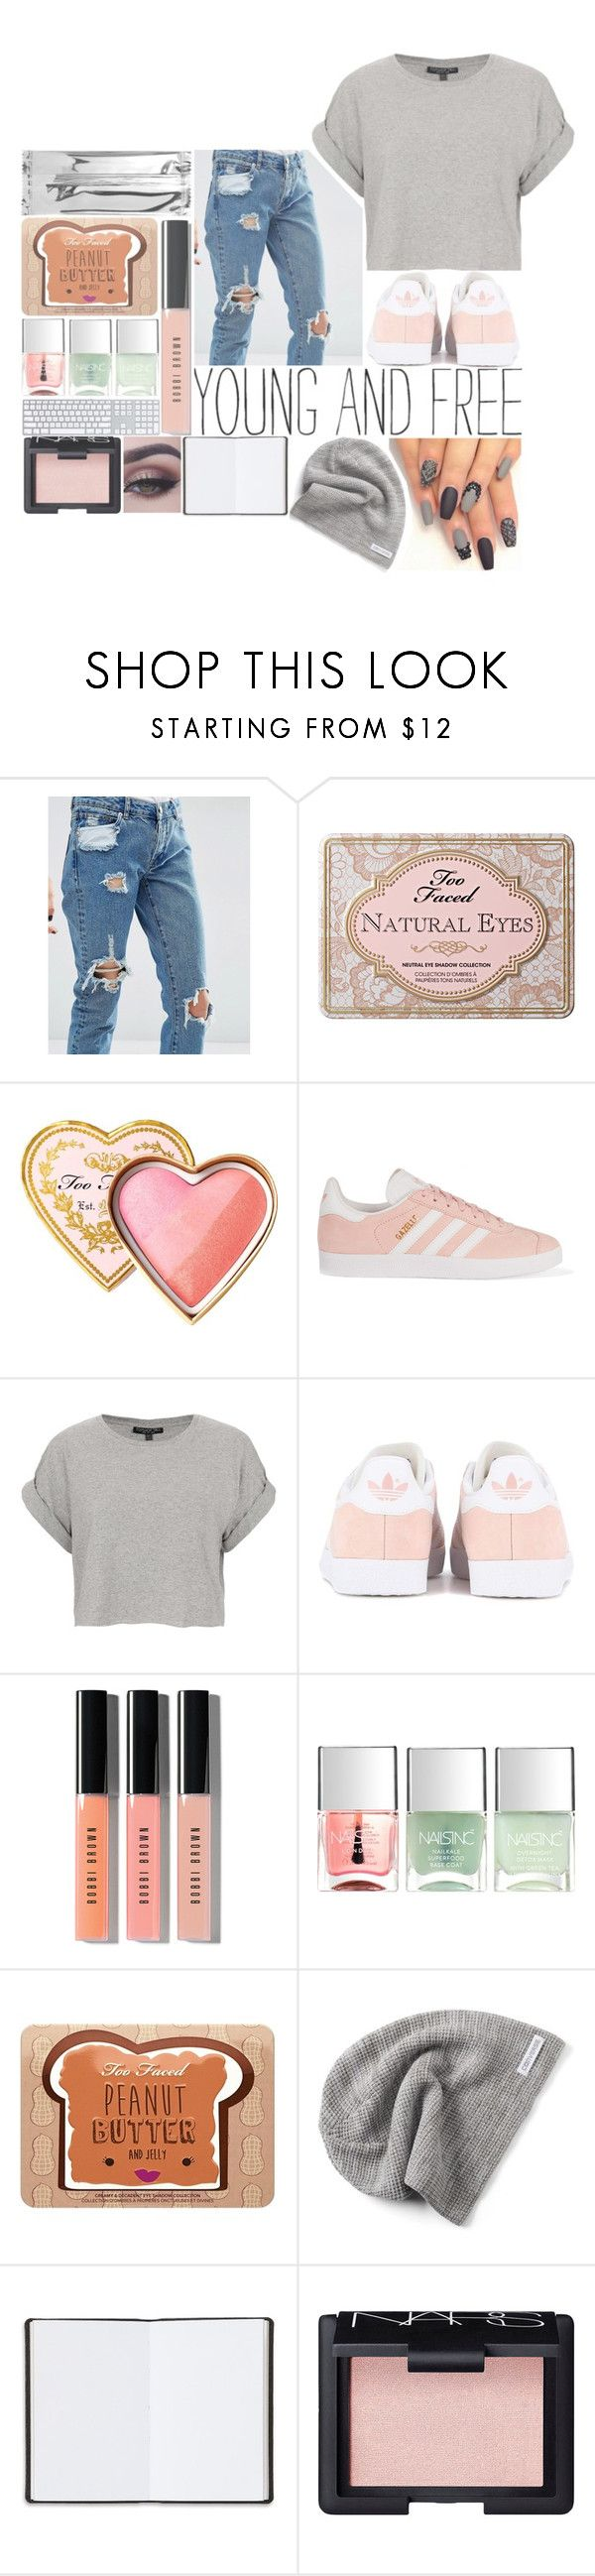 """★ giving back is all I want to do ★"" by aliiiiison ❤ liked on Polyvore featuring ASOS, Too Faced Cosmetics, adidas Originals, Topshop, Bobbi Brown Cosmetics, Nails Inc., Converse, Harrods and NARS Cosmetics"